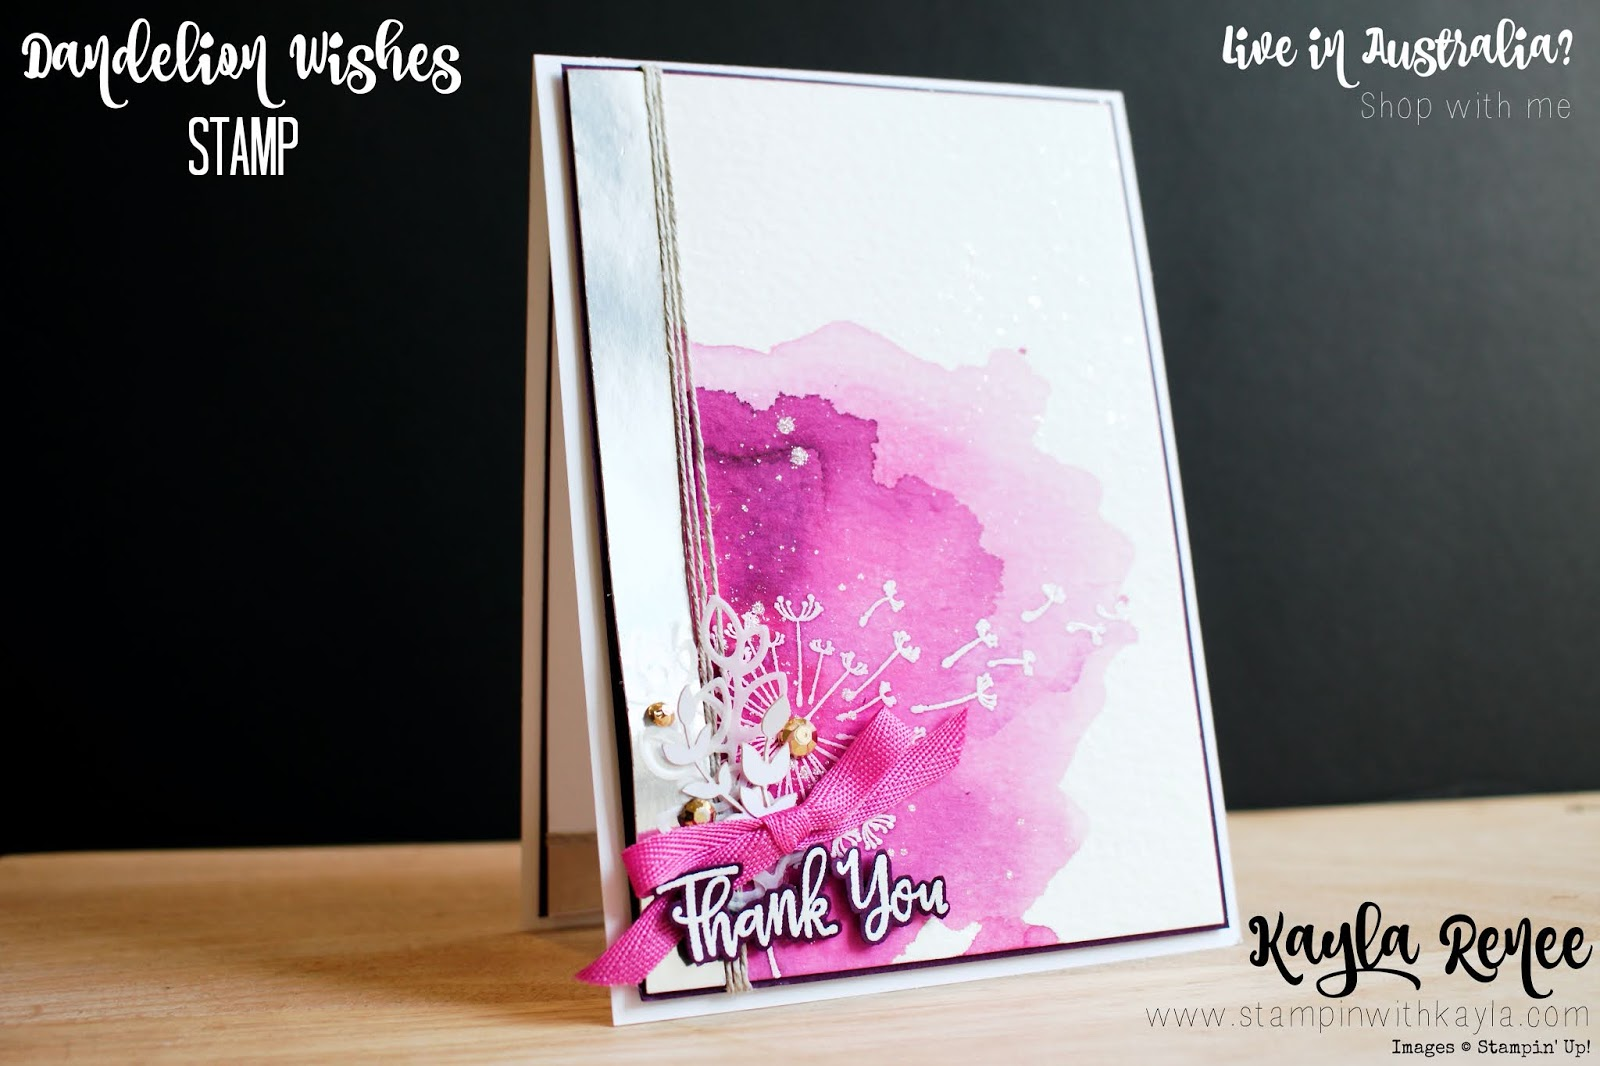 Stampin' Up! Dandelion Wishes ~ Thank You Card